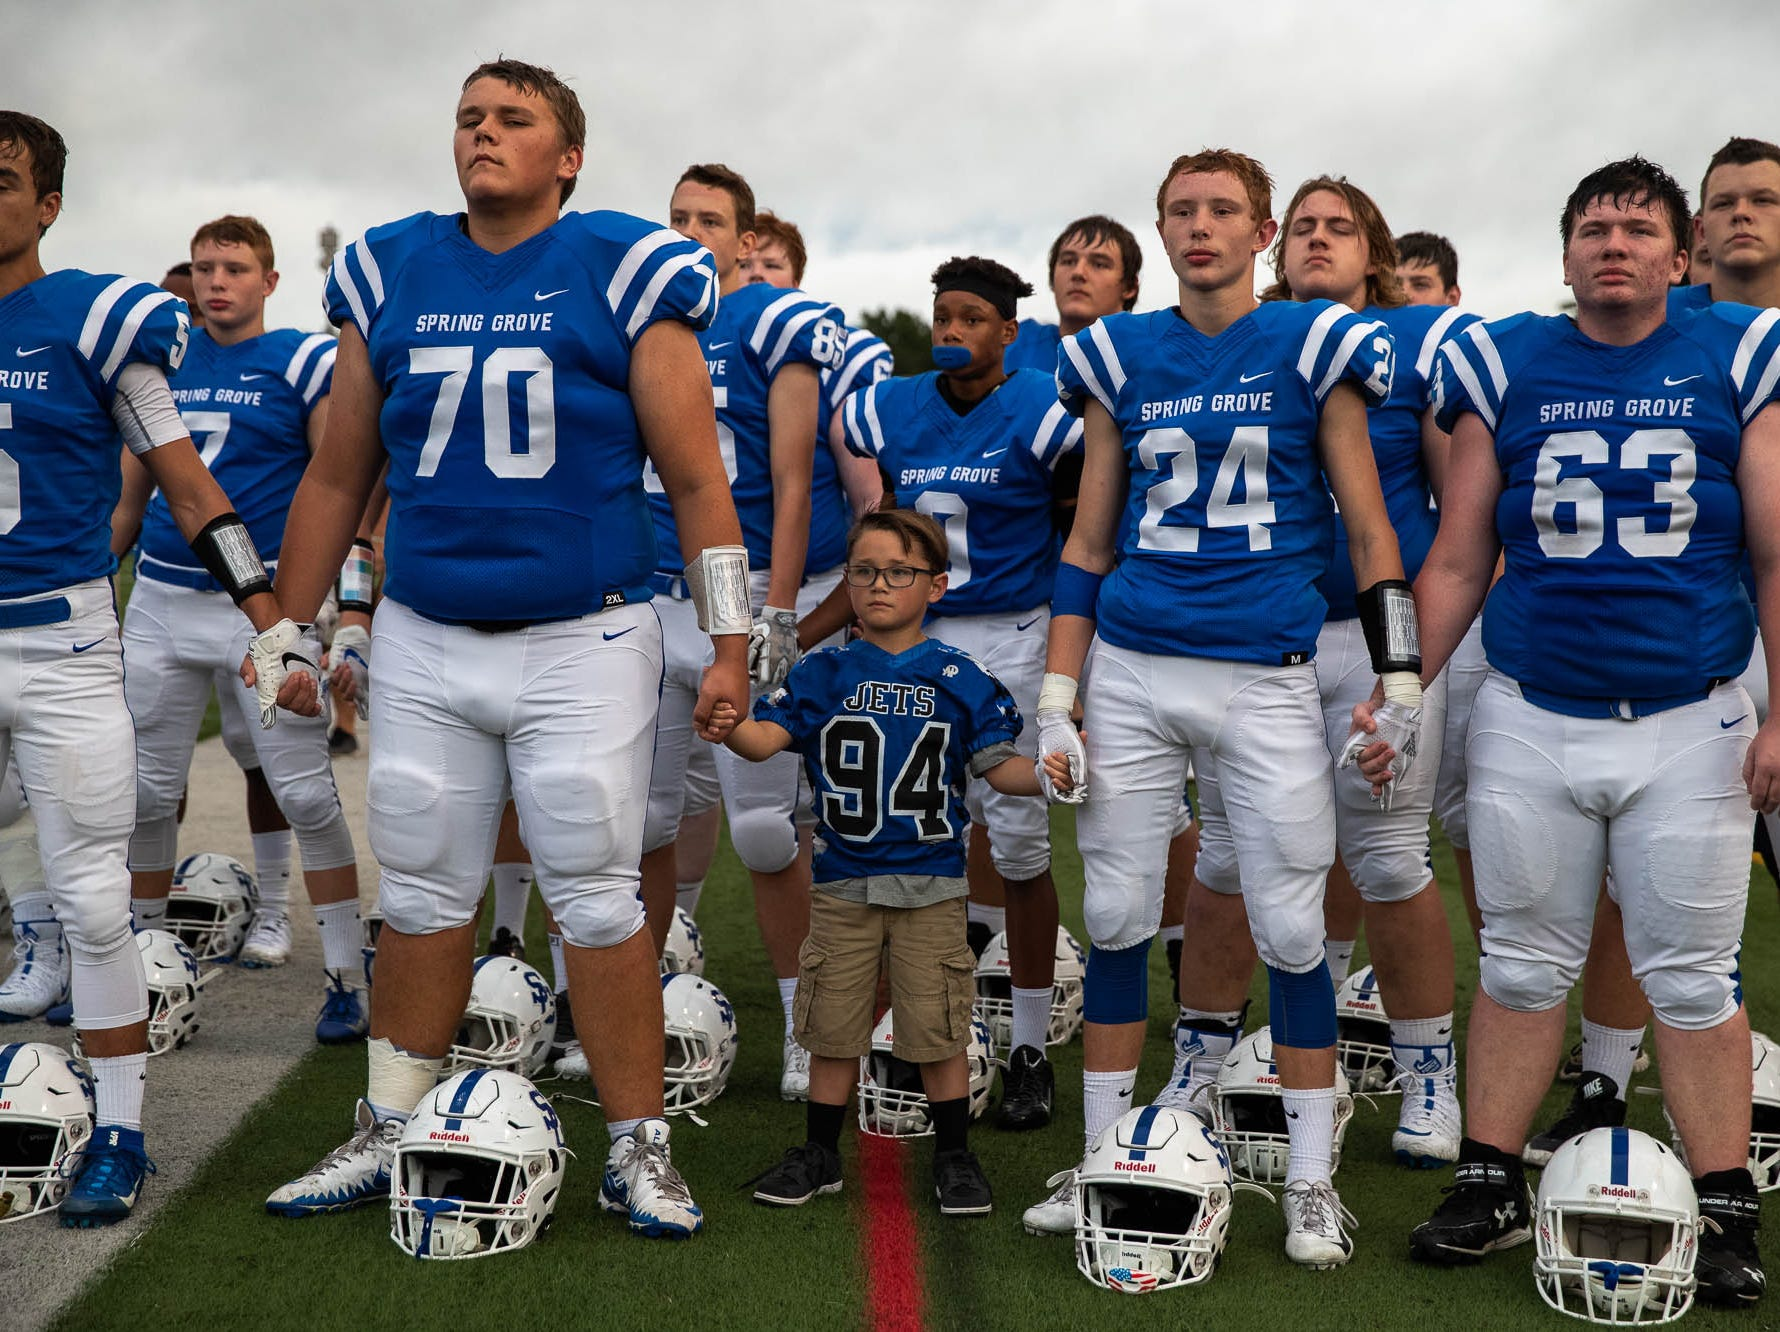 Spring Grove's John Halaj (70) and Montgomery Jarvis (24) hold hands with ballboy Josh Forry, 8, as the National Anthem plays before a football game between Muhlenberg and Spring Grove, Friday, Aug. 31, 2018, in Spring Grove.